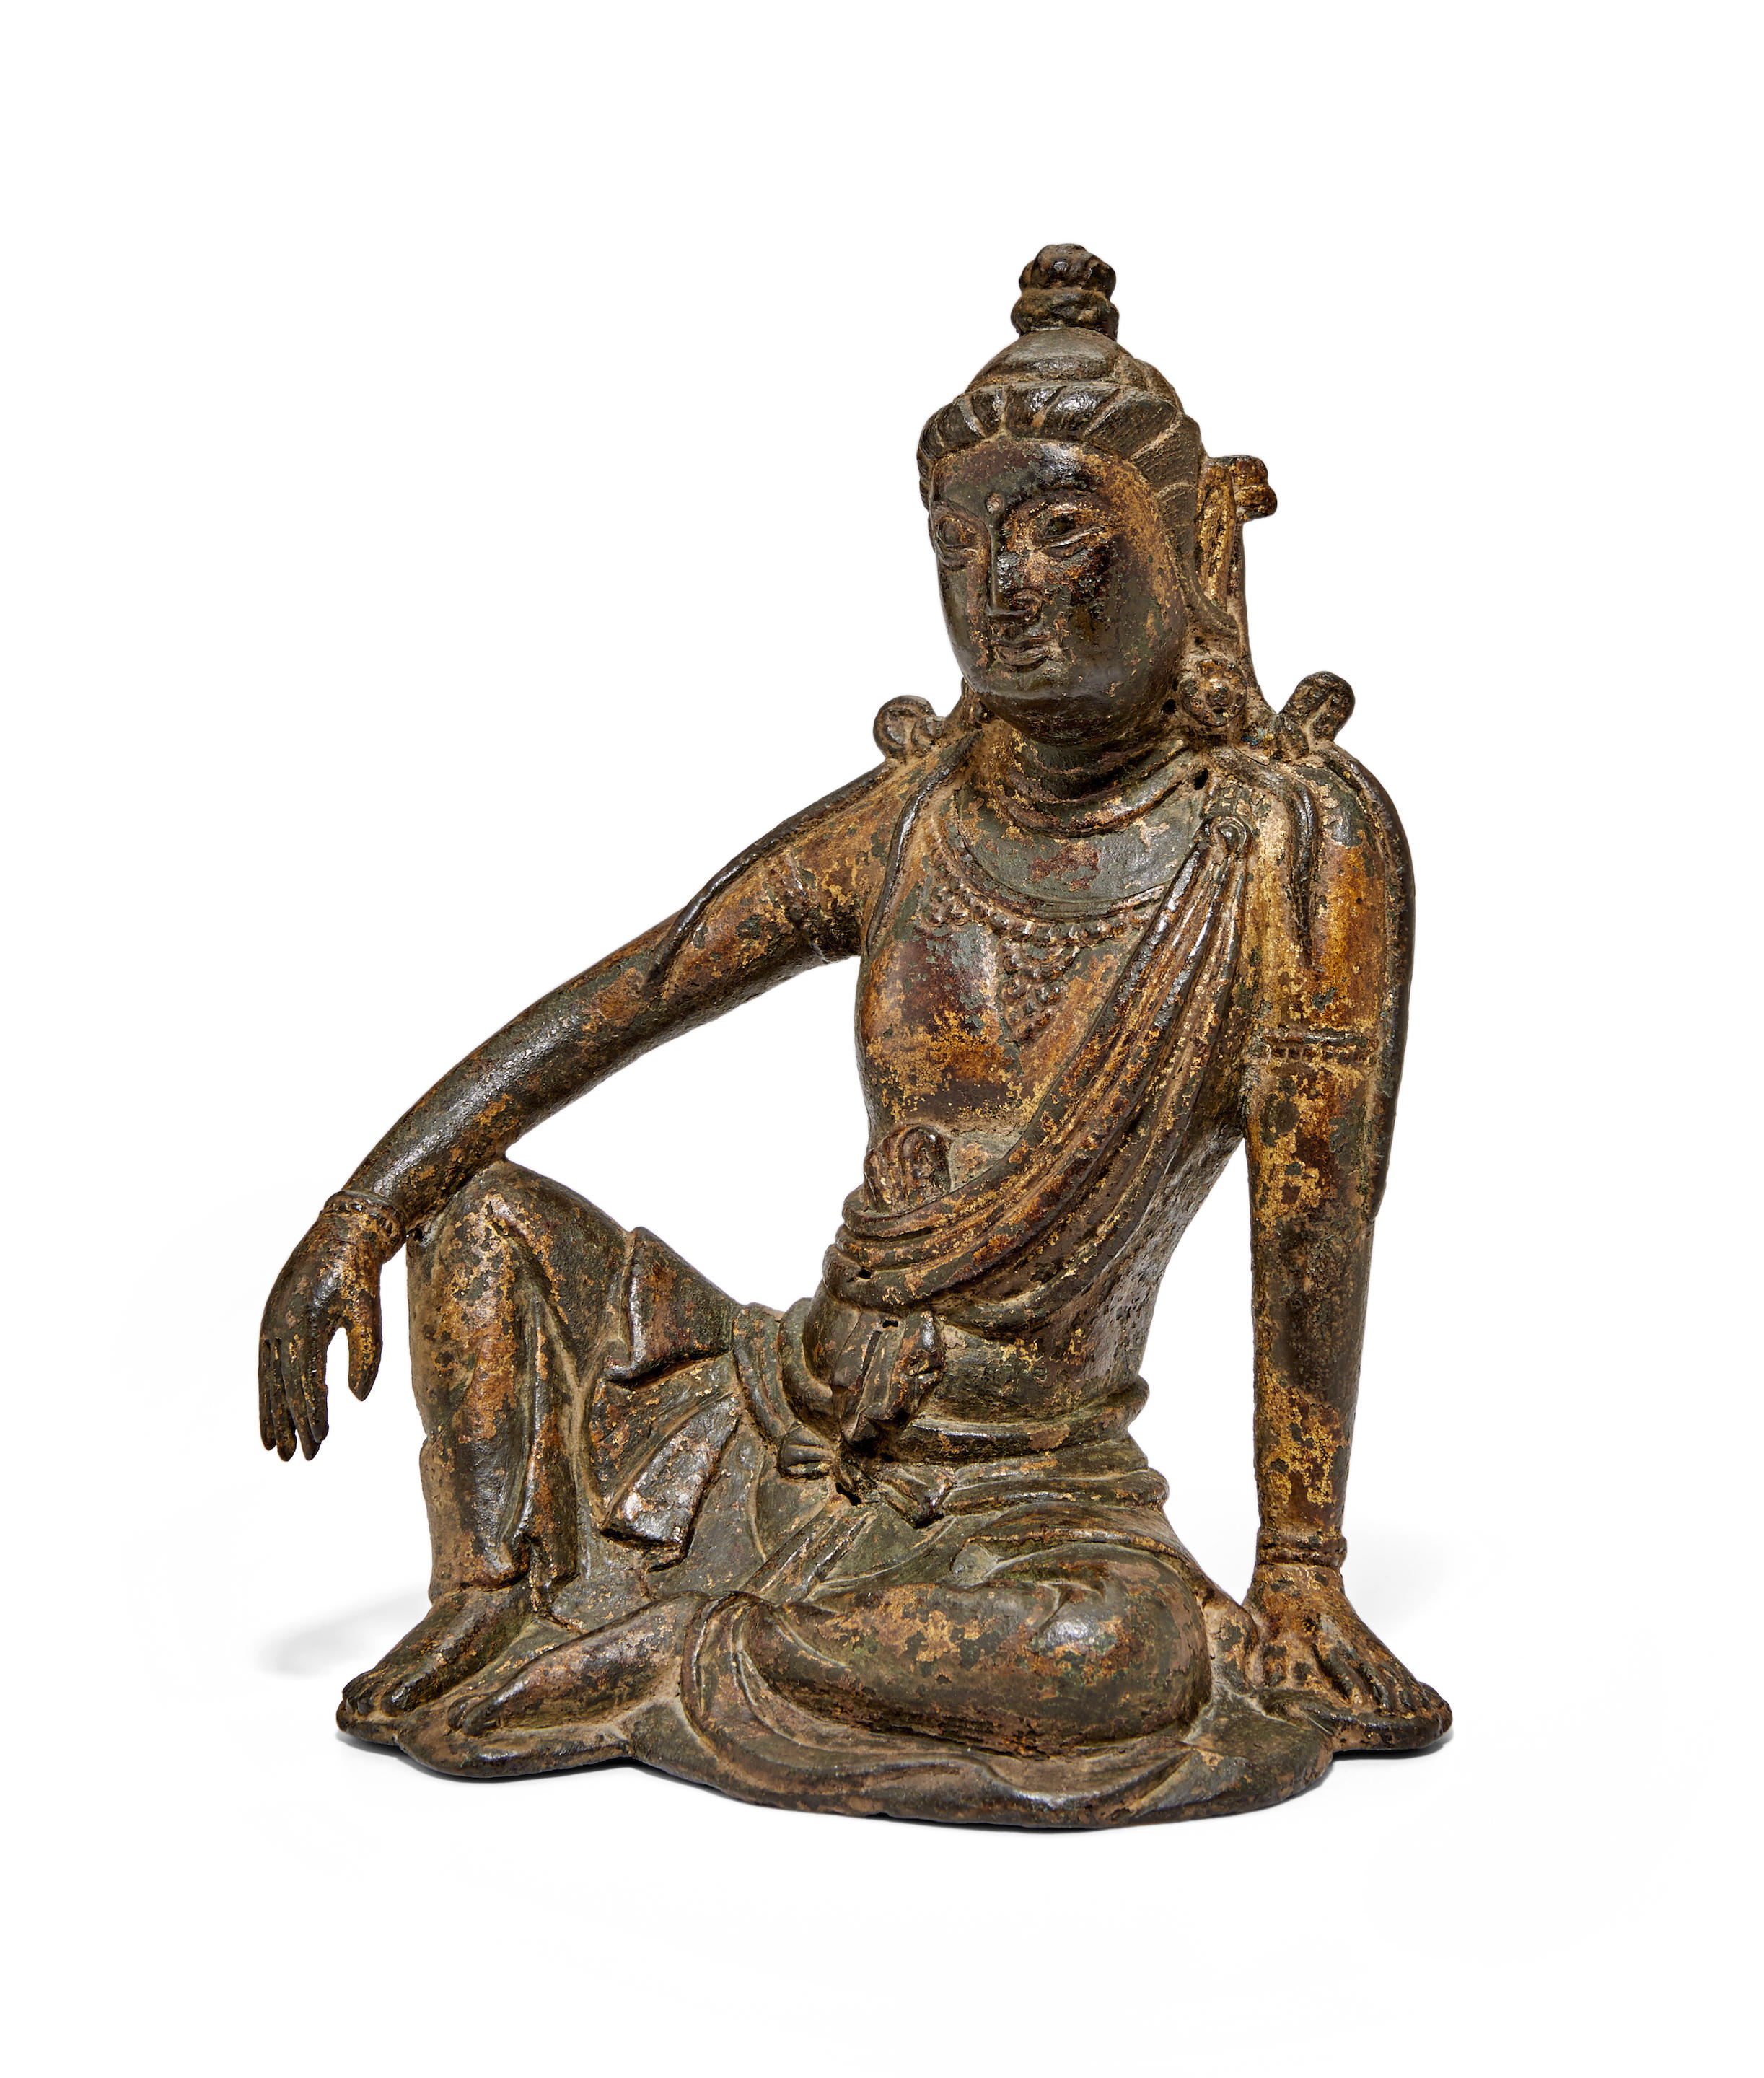 A FINE AND RARE GILT-LACQUERED BRONZE FIGURE OF GUANYIN